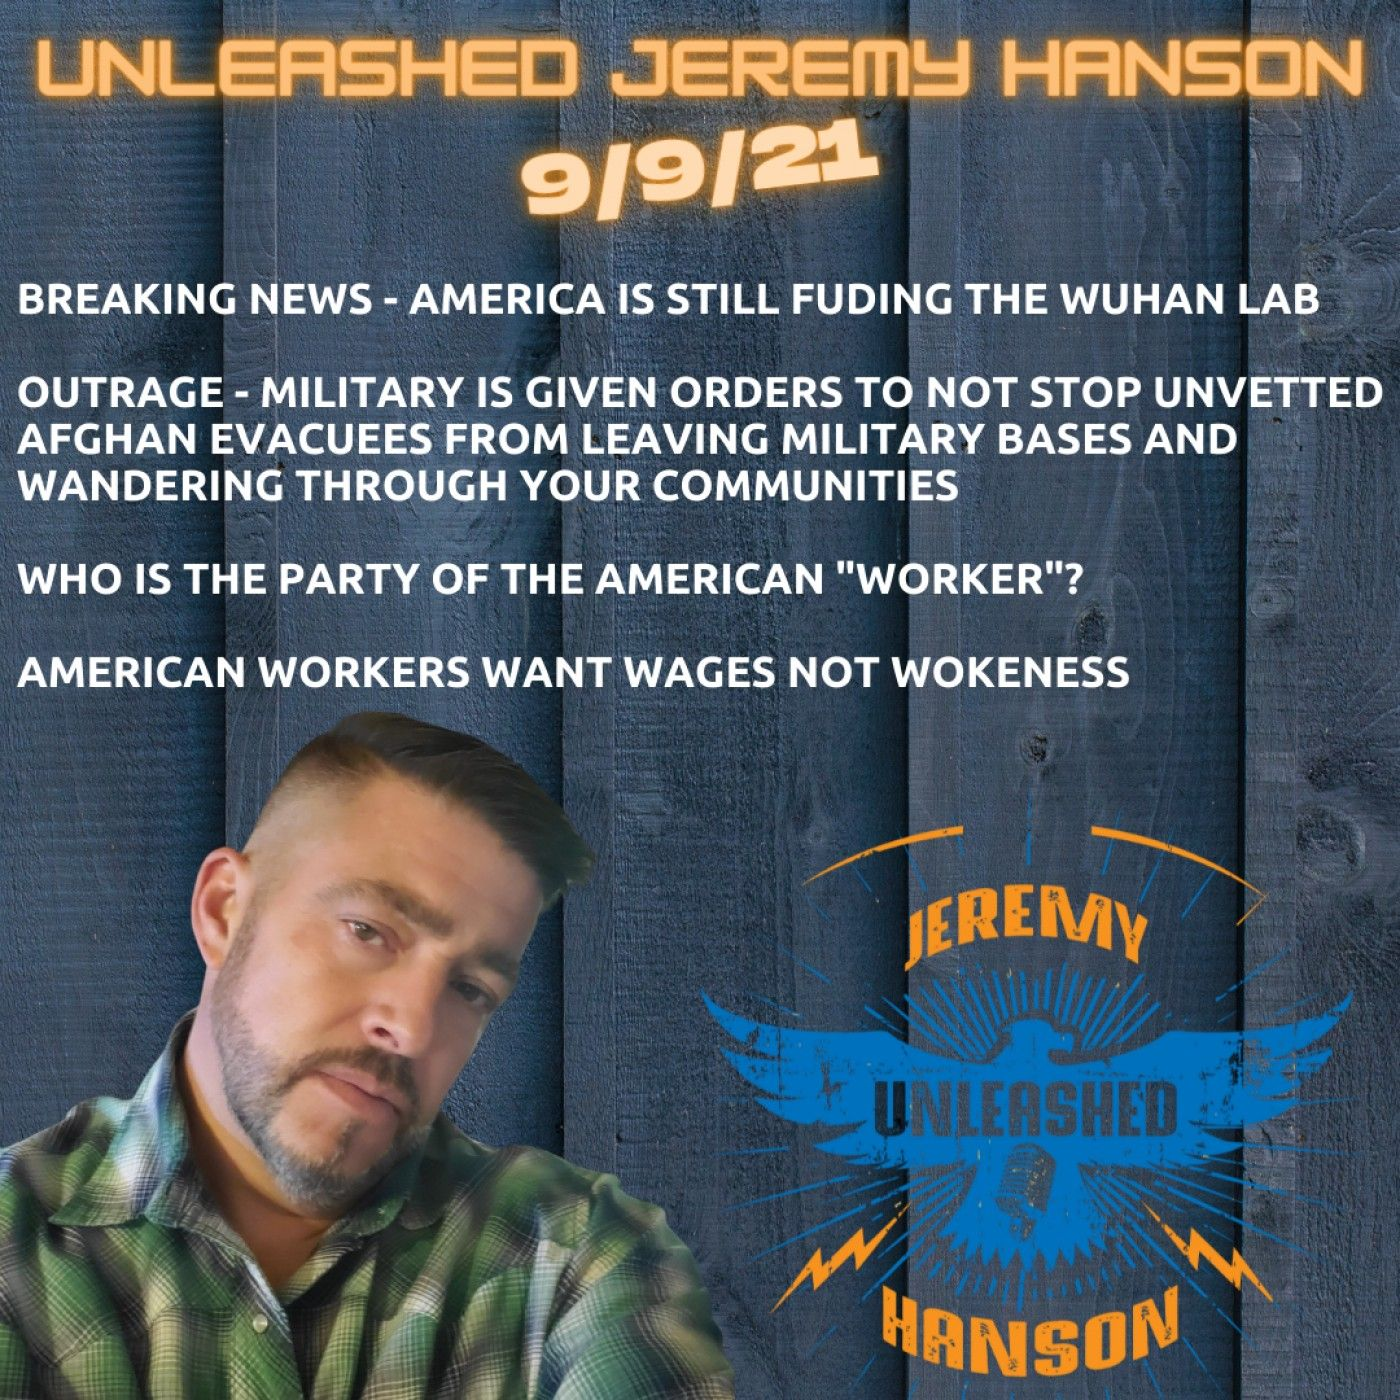 """Unleashed Jeremy Hanson 9/9/21  Outrage,  America is still funding Wuhan Lab - Military orders """"let unvetted evacuees leave bases into Ameri"""